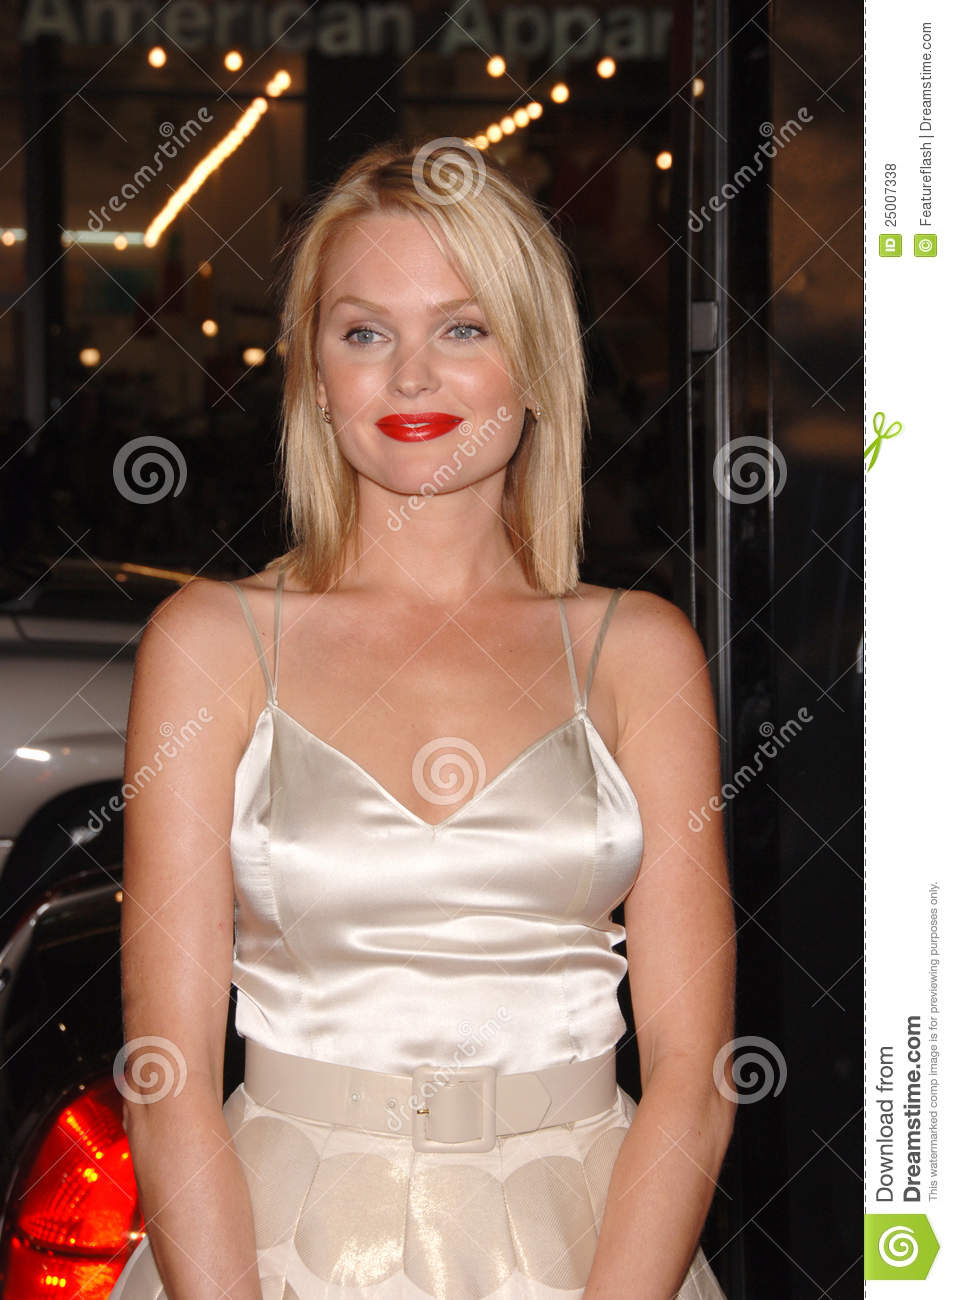 Communication on this topic: Marie Wainwright, sunny-mabrey/